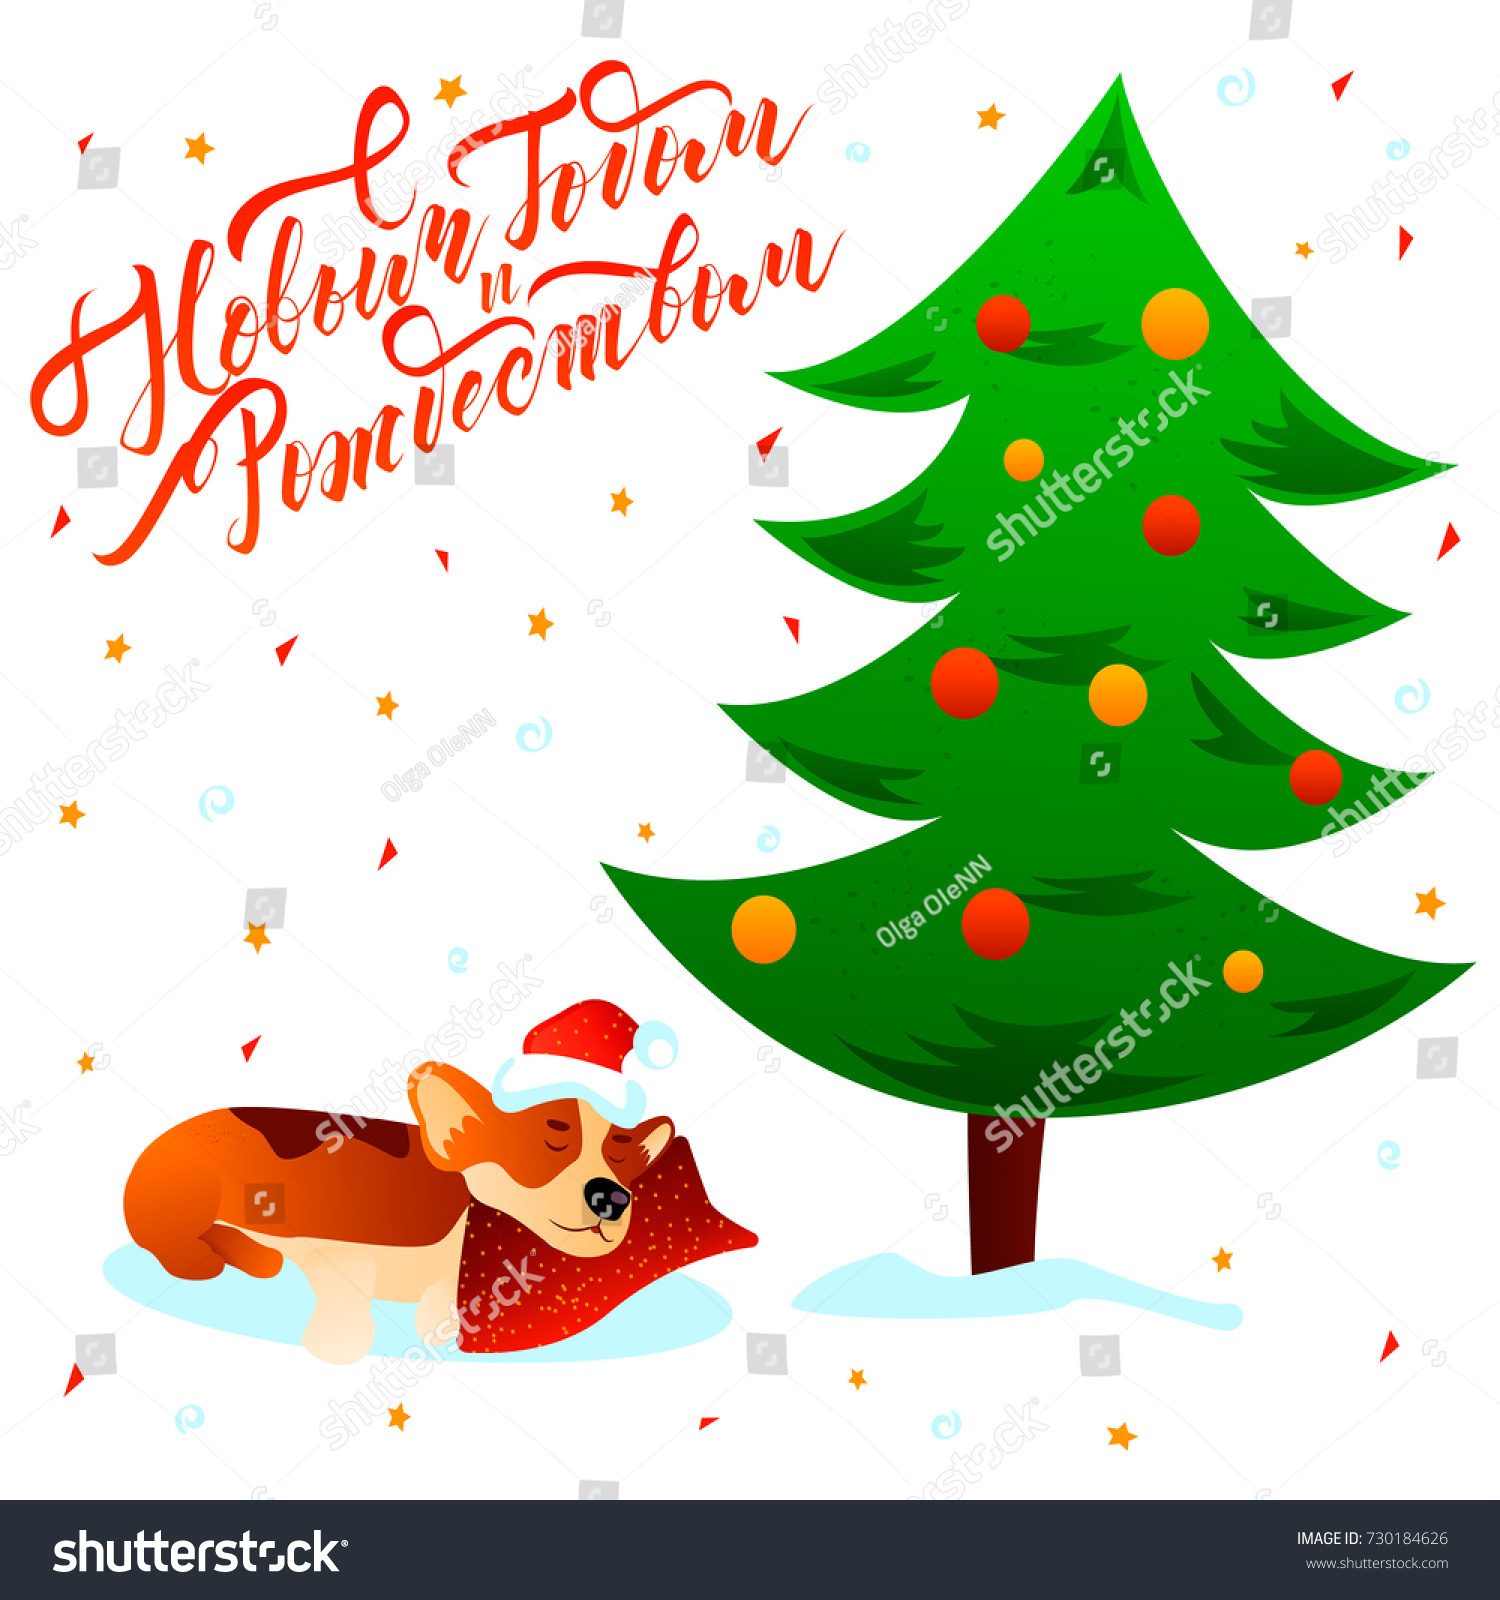 Merry Christmas Happy New Year Russian Stock Vector ...